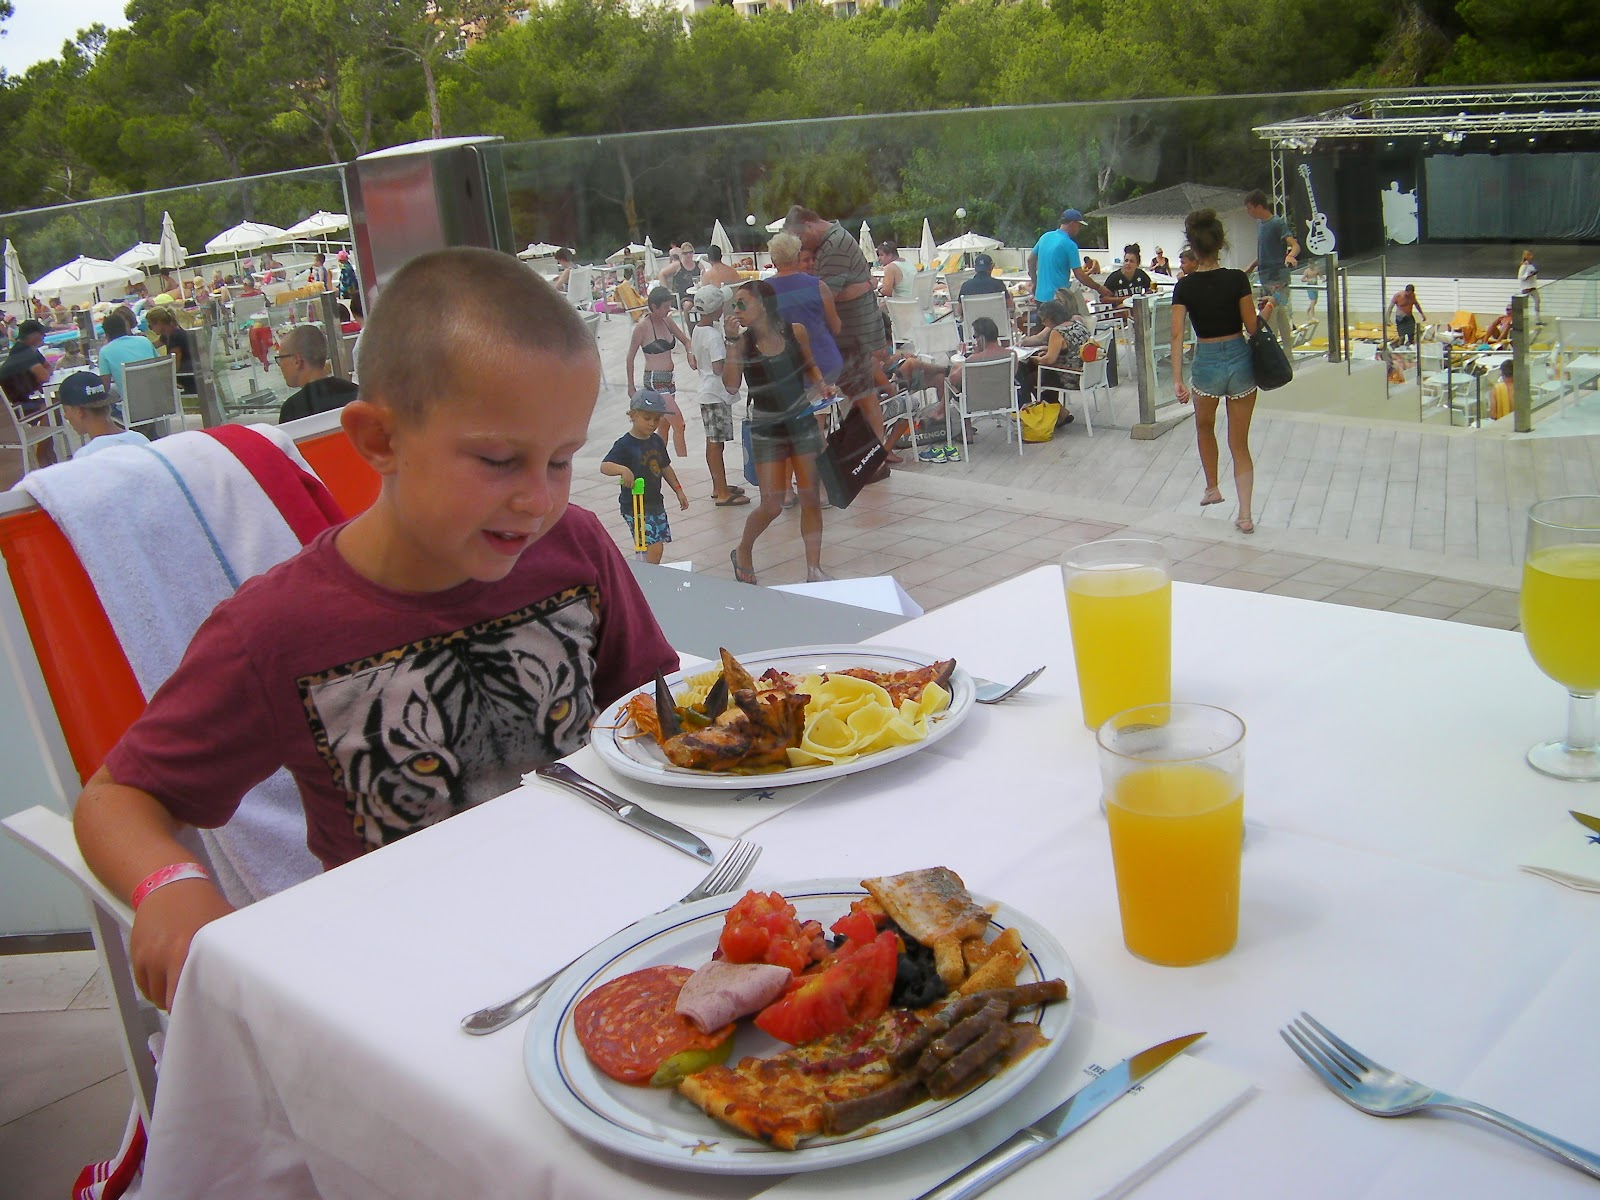 iberostar cala barca mallorca terrace all inclusive buffet meal